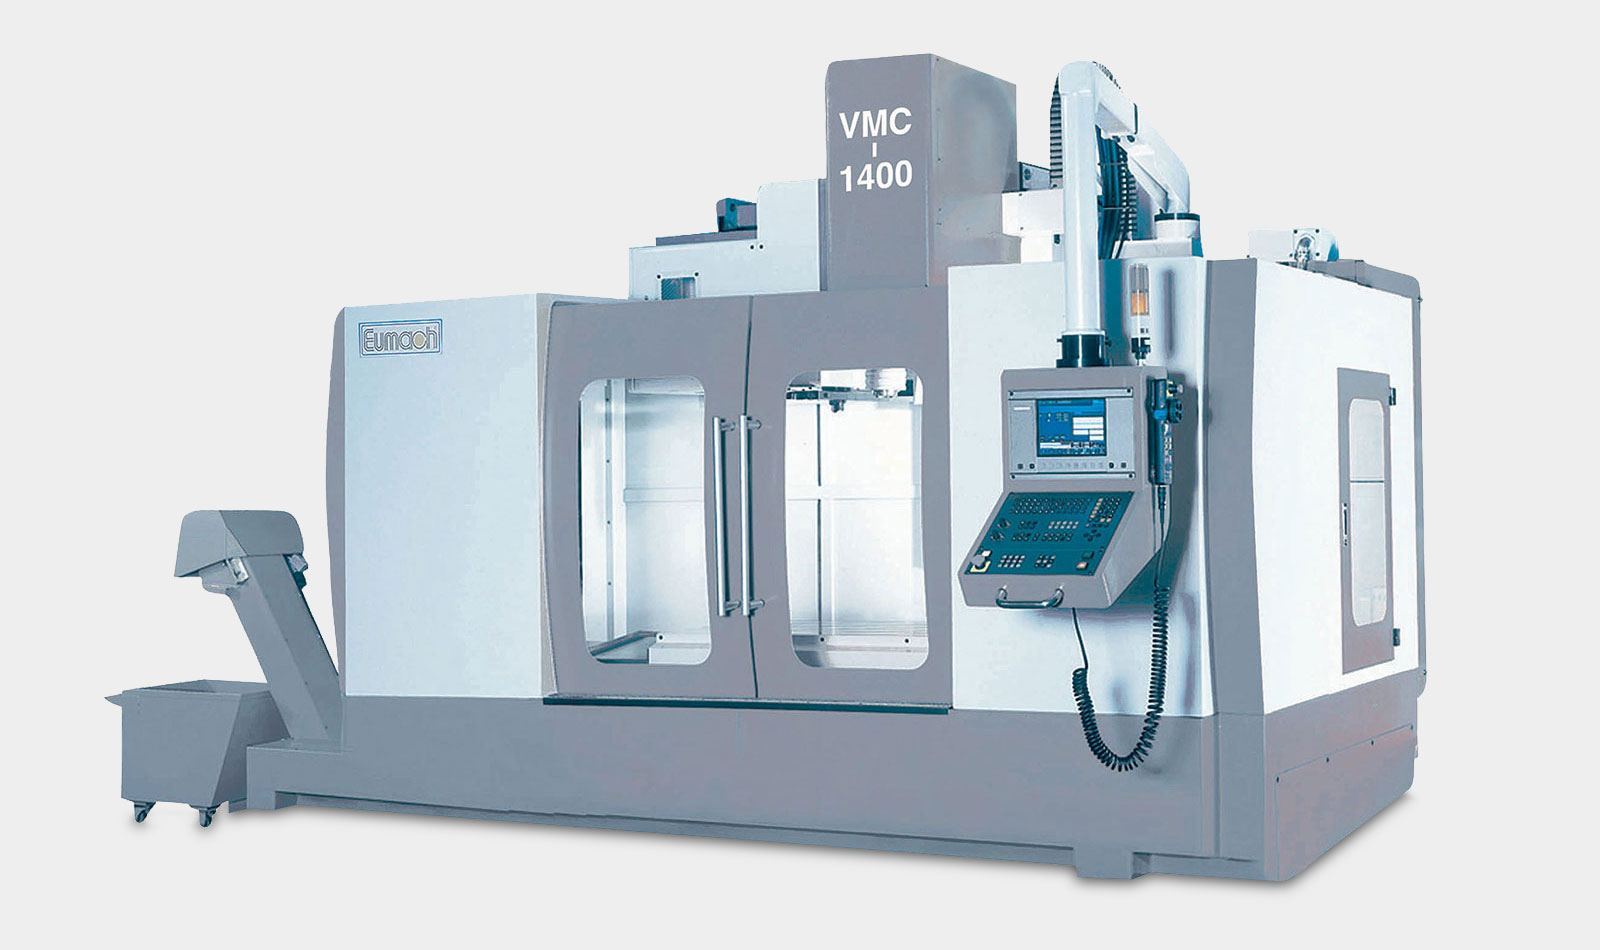 Eumach Vertical Machining Centres VMC